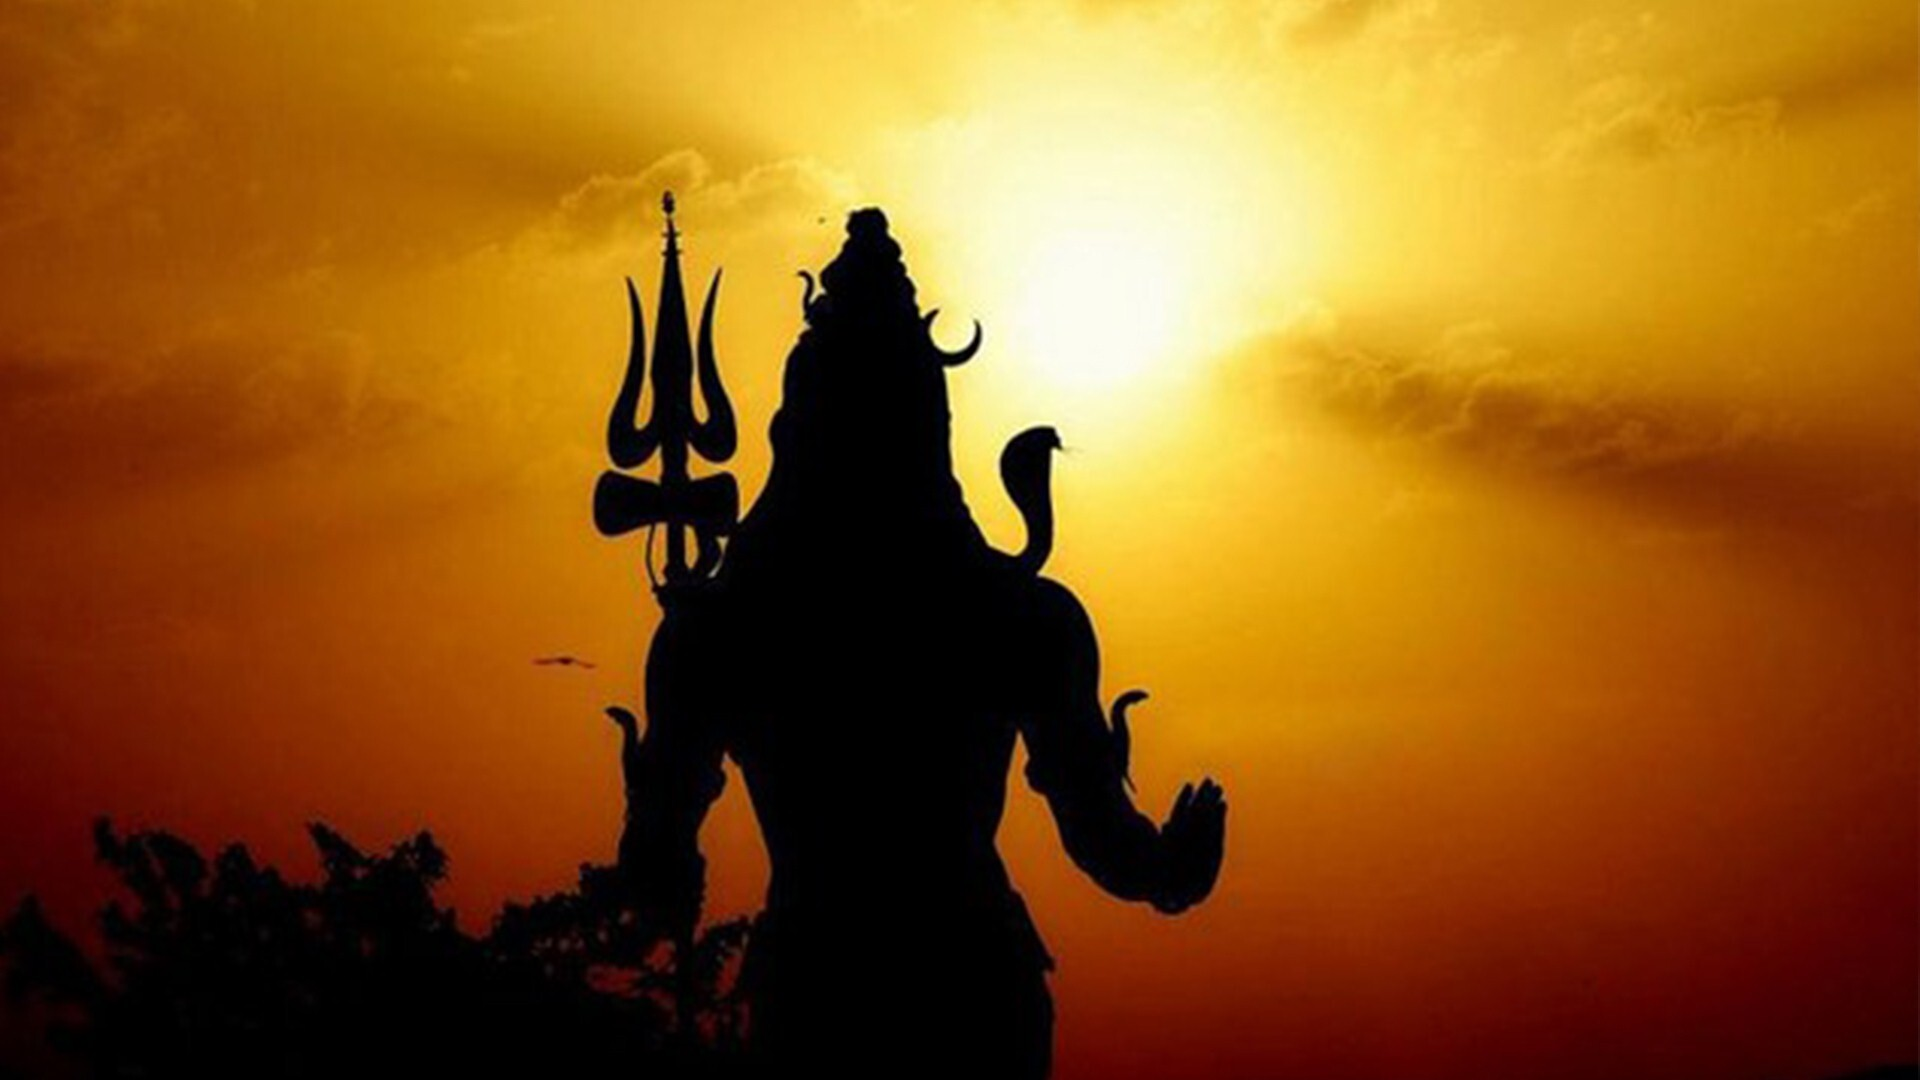 on sunset lord shiva shadow hd wallpapers